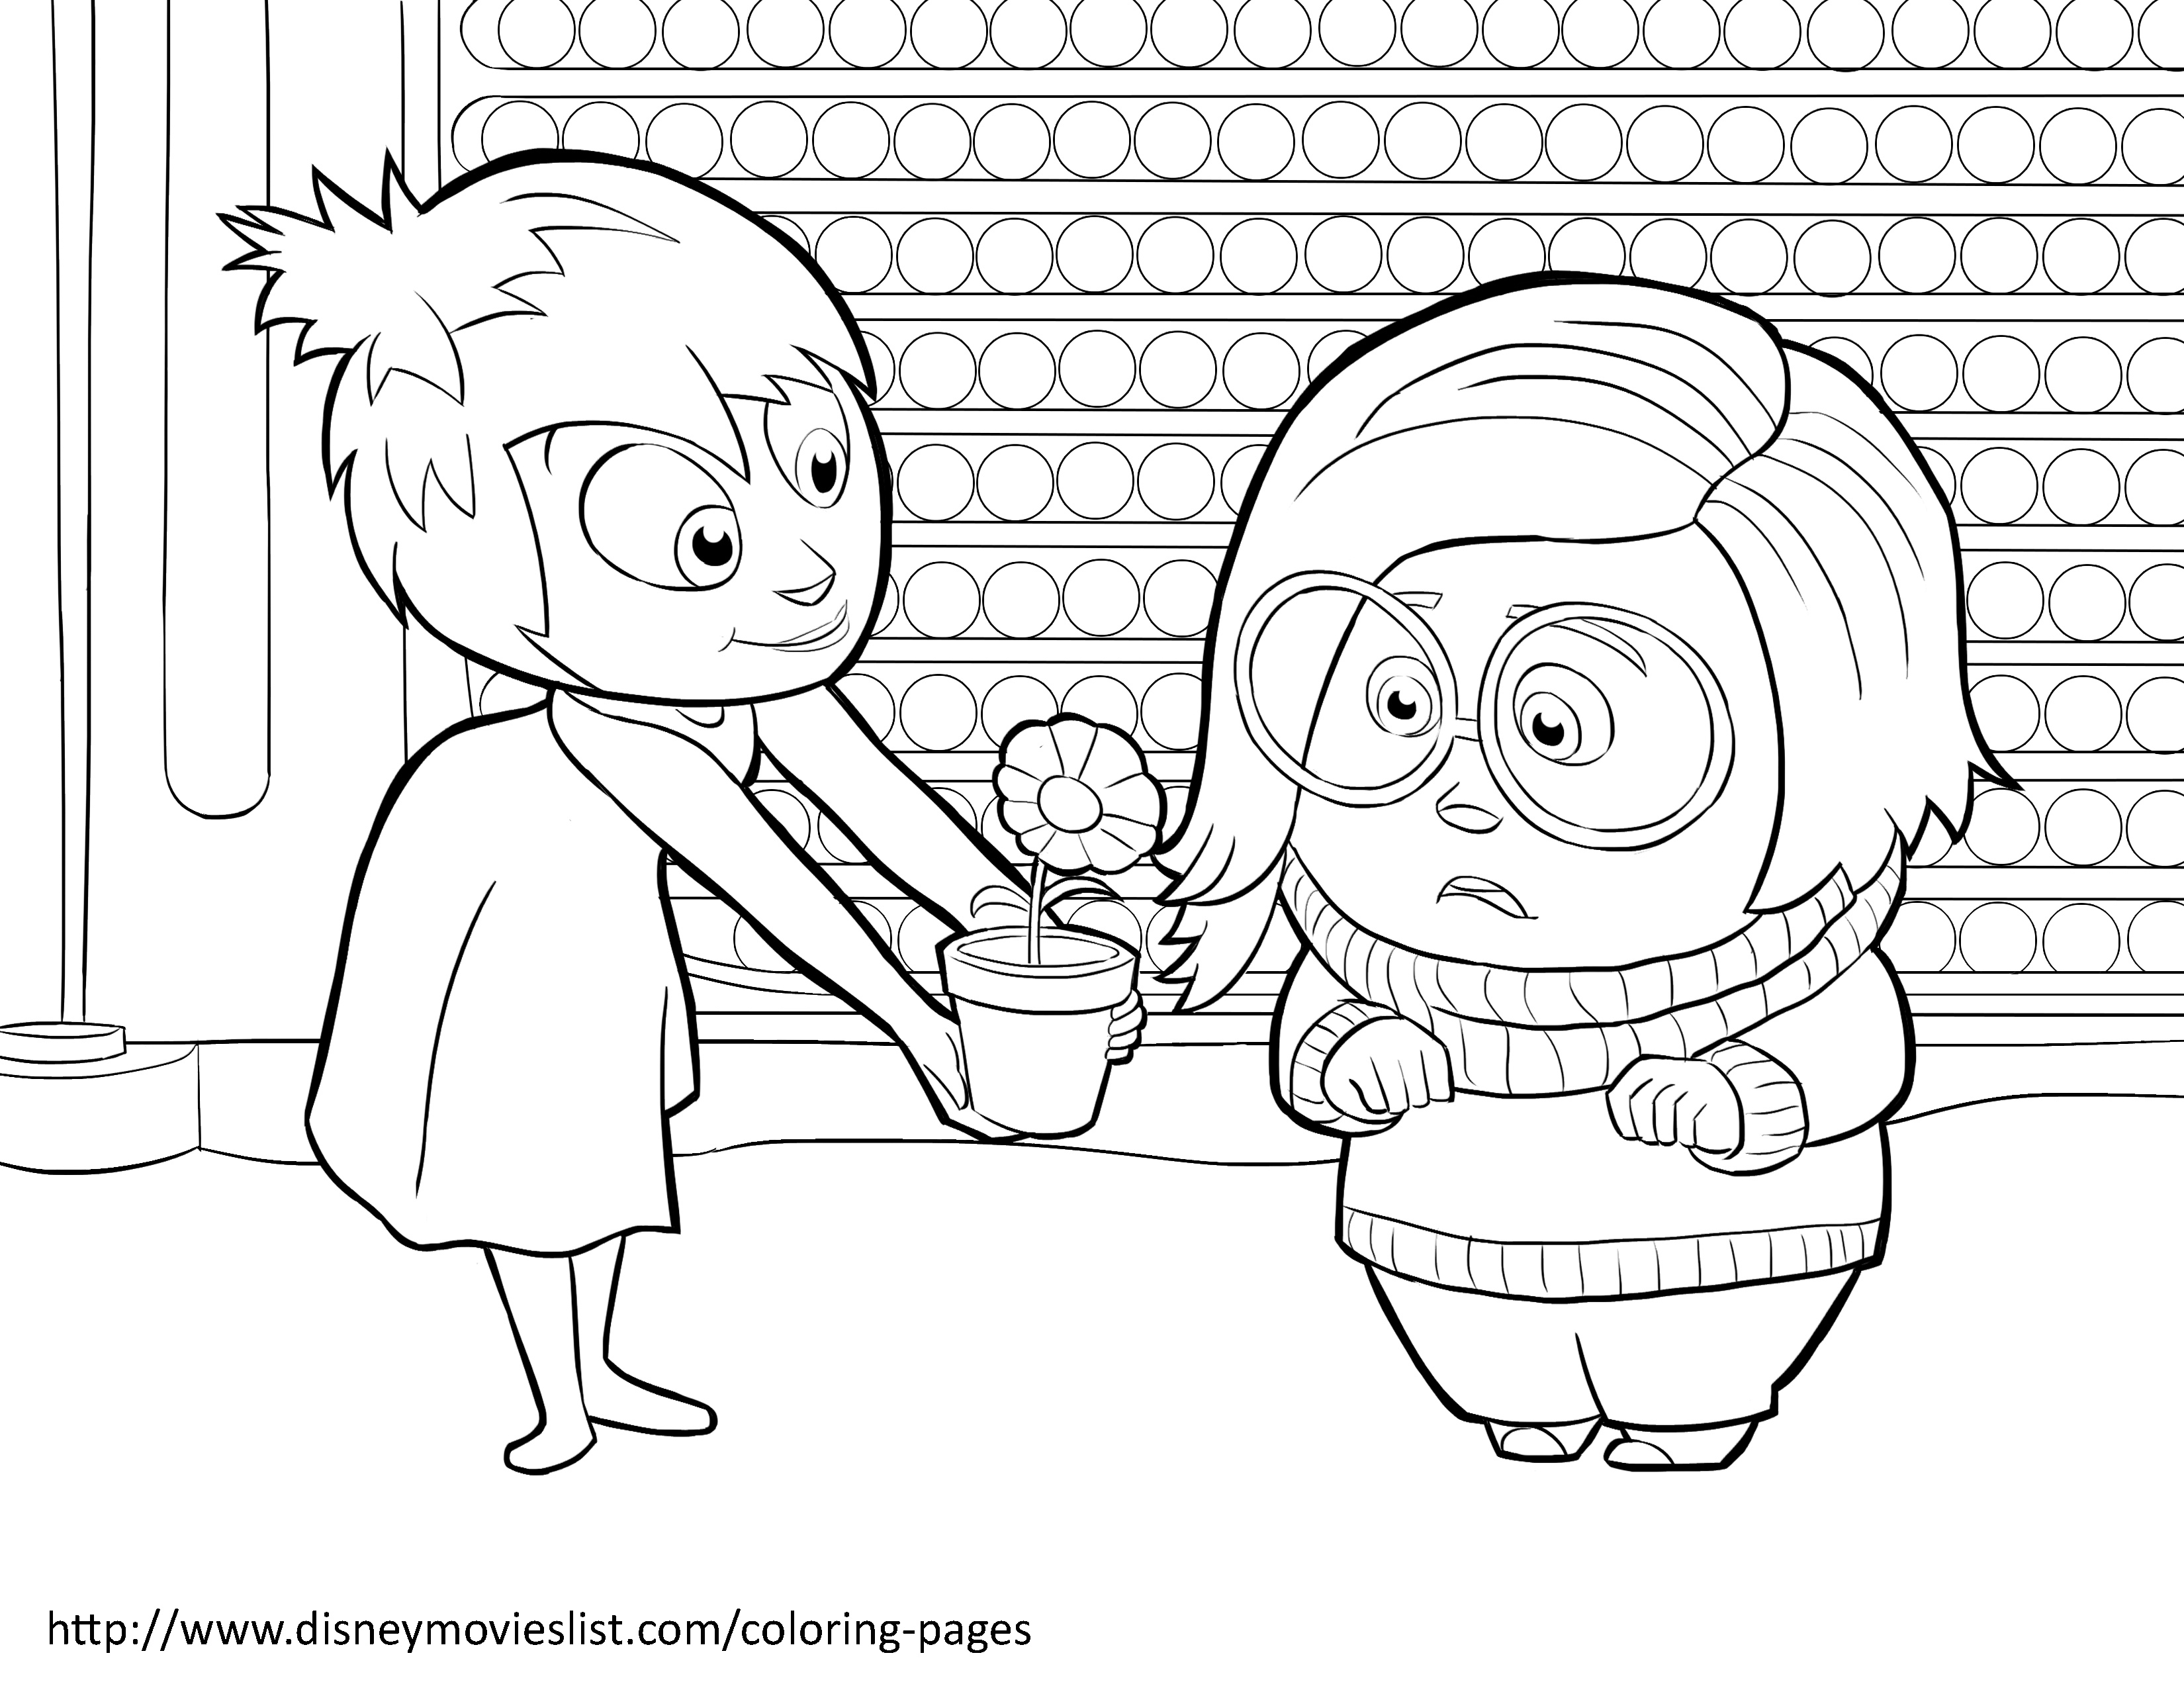 3300x2550 Printable Coloring Pages Disney Inside Out Printables And Menu